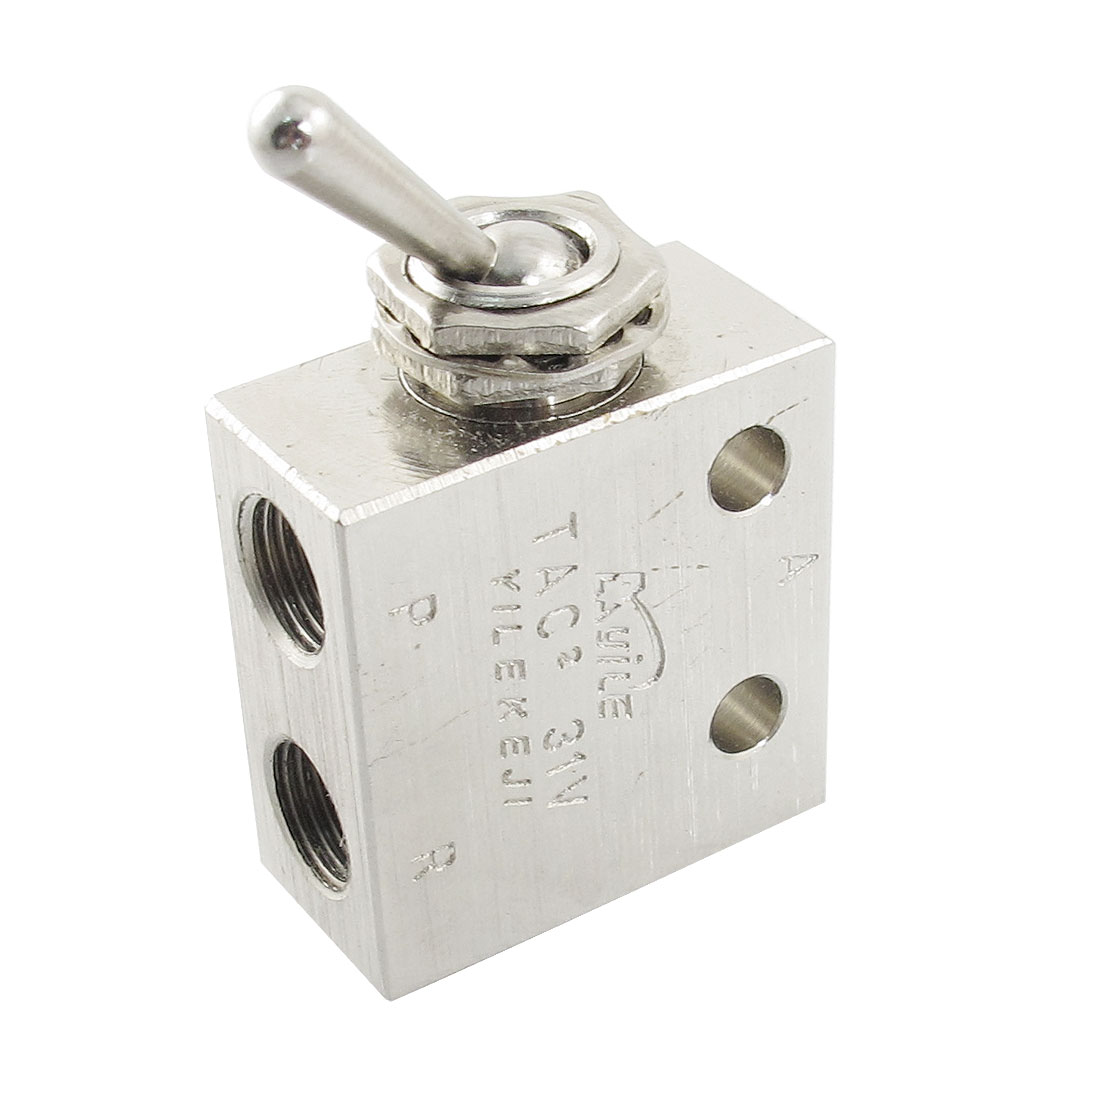 UXCELL 1/8Pt Thread 2 Position 3 Way Rectangle Mechanical Air Pneumatic Valve пазл clementoni trittico 3х500 эл легенды нью йорка 39305